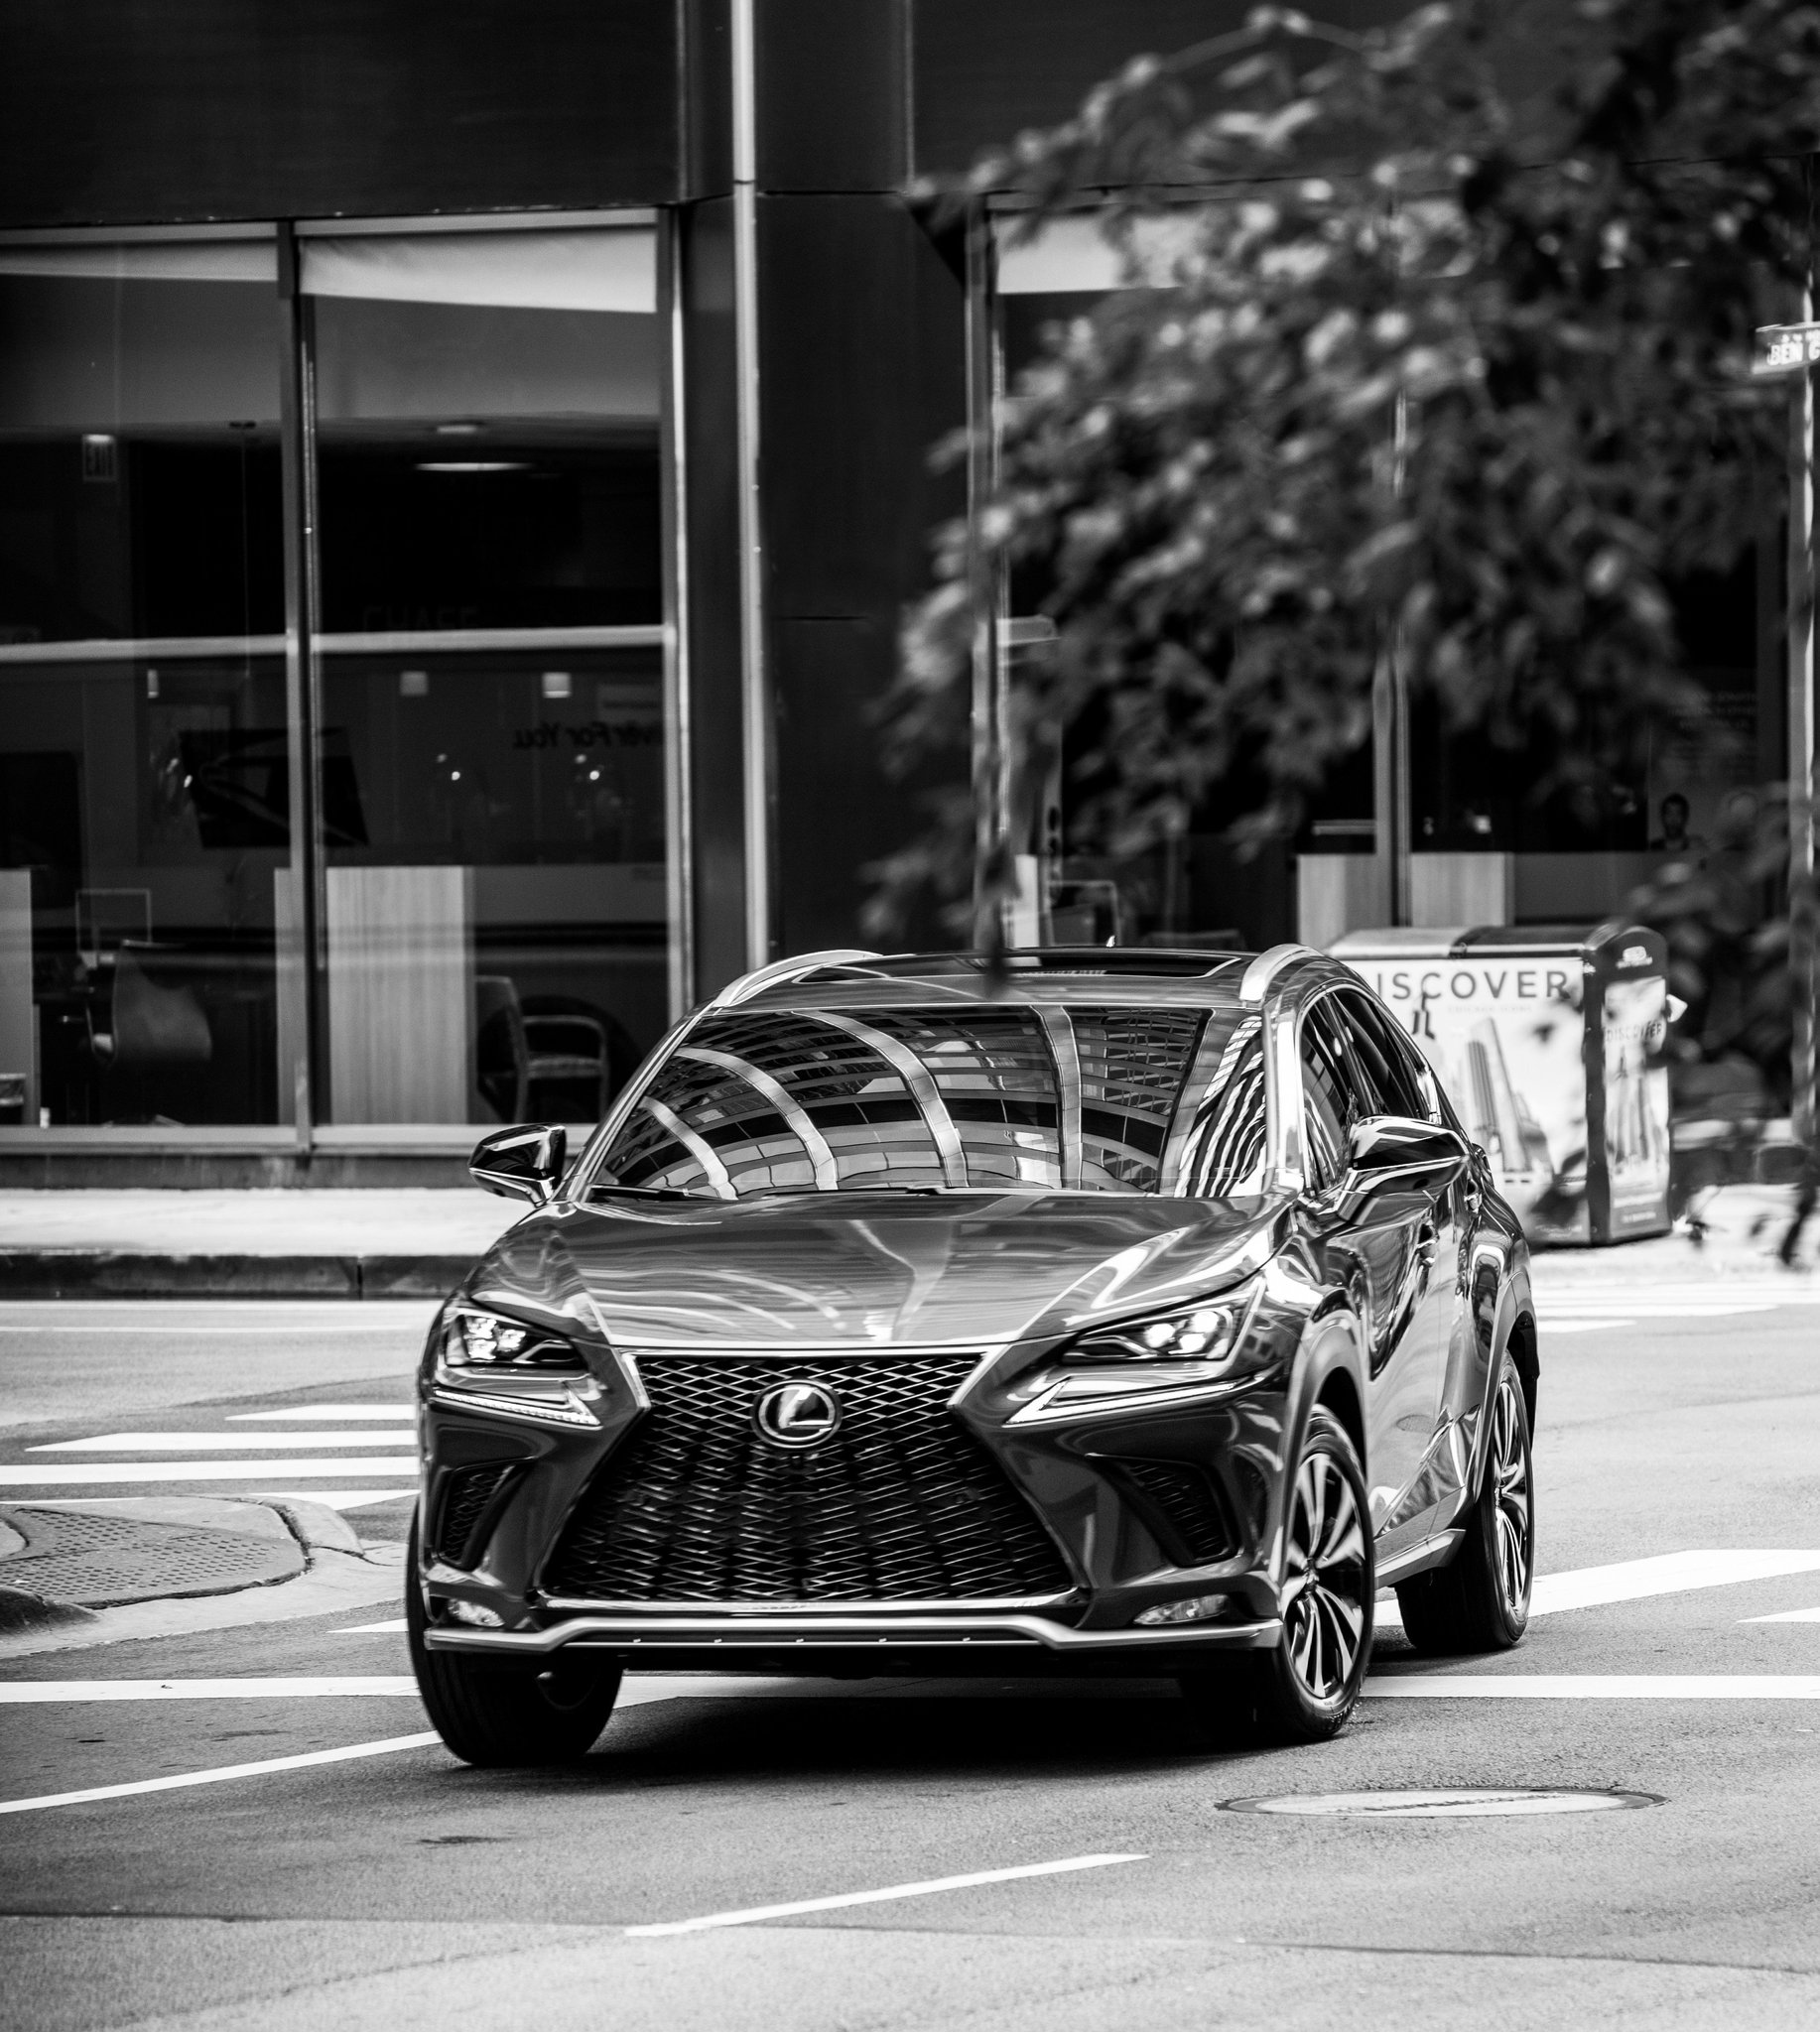 The compact SUV other compact SUVs try to be. #LexusNXFSPORT https://t.co/pT2o0NJTx7